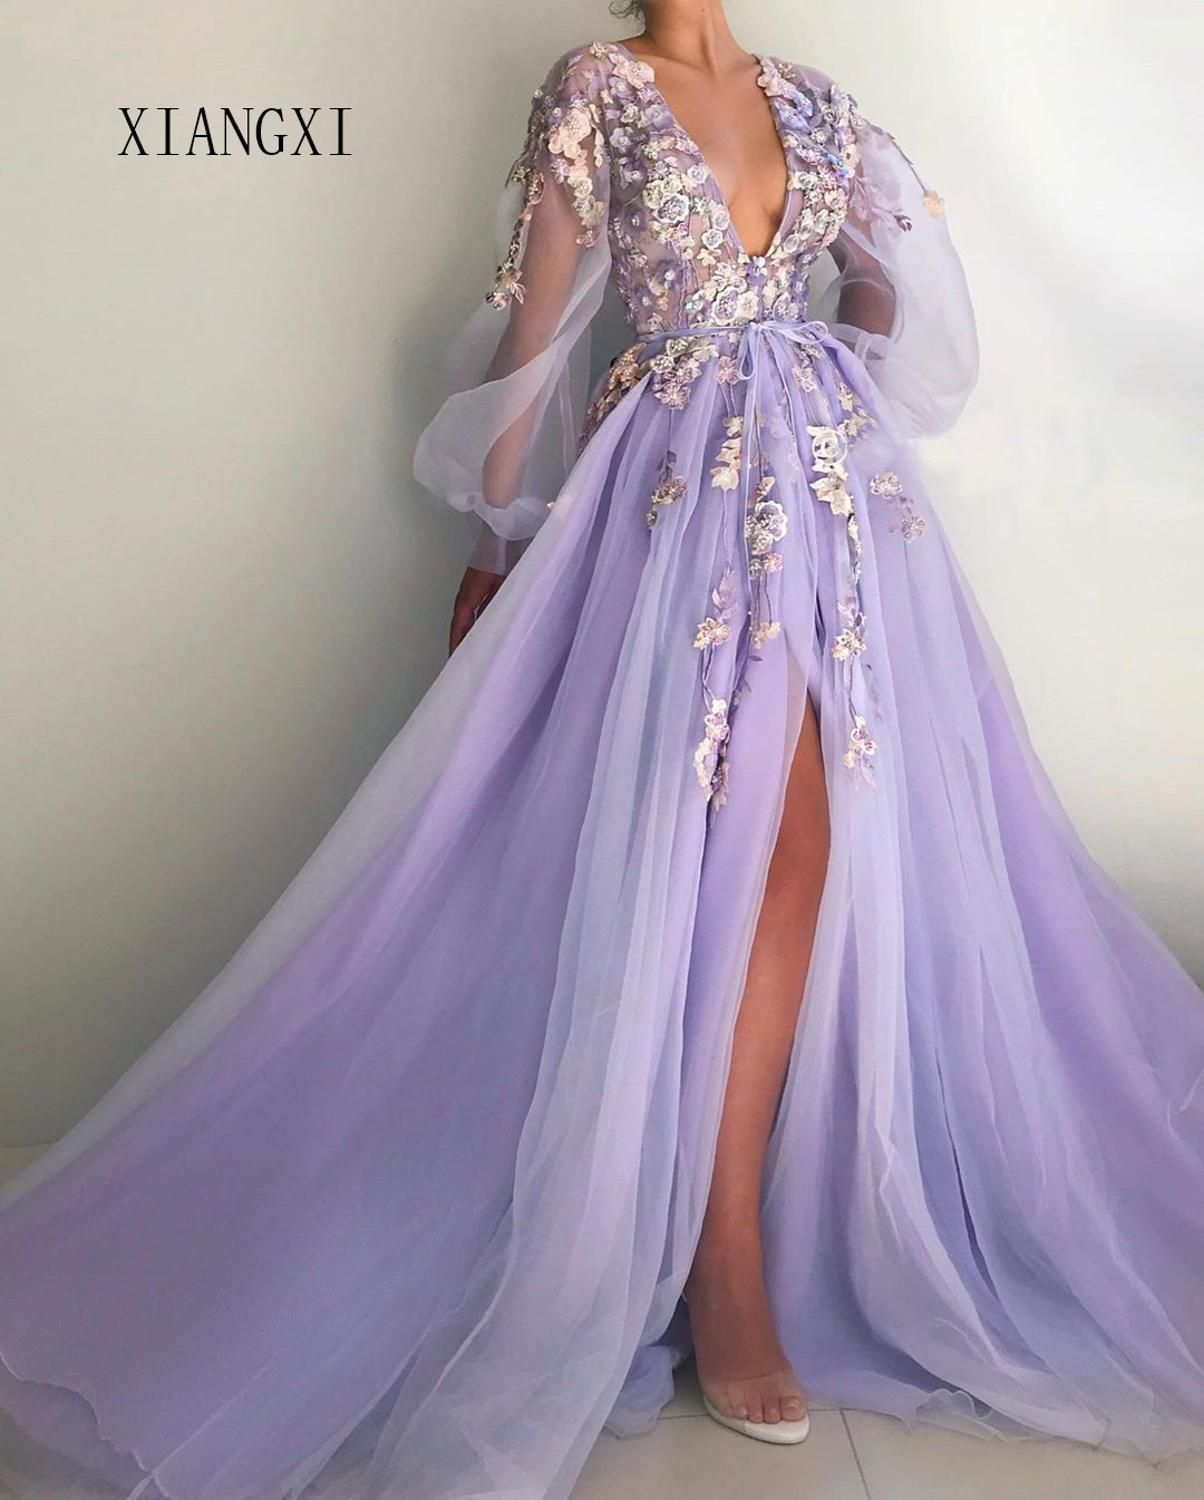 Special Occasion Dresses Beautiful Lilac Evening Dress Deep V Neck Full Sleeves Tulle A Line Long Evening Dresses Prom Par Dresses Gowns Dresses Ball Dresses [ 1500 x 1204 Pixel ]